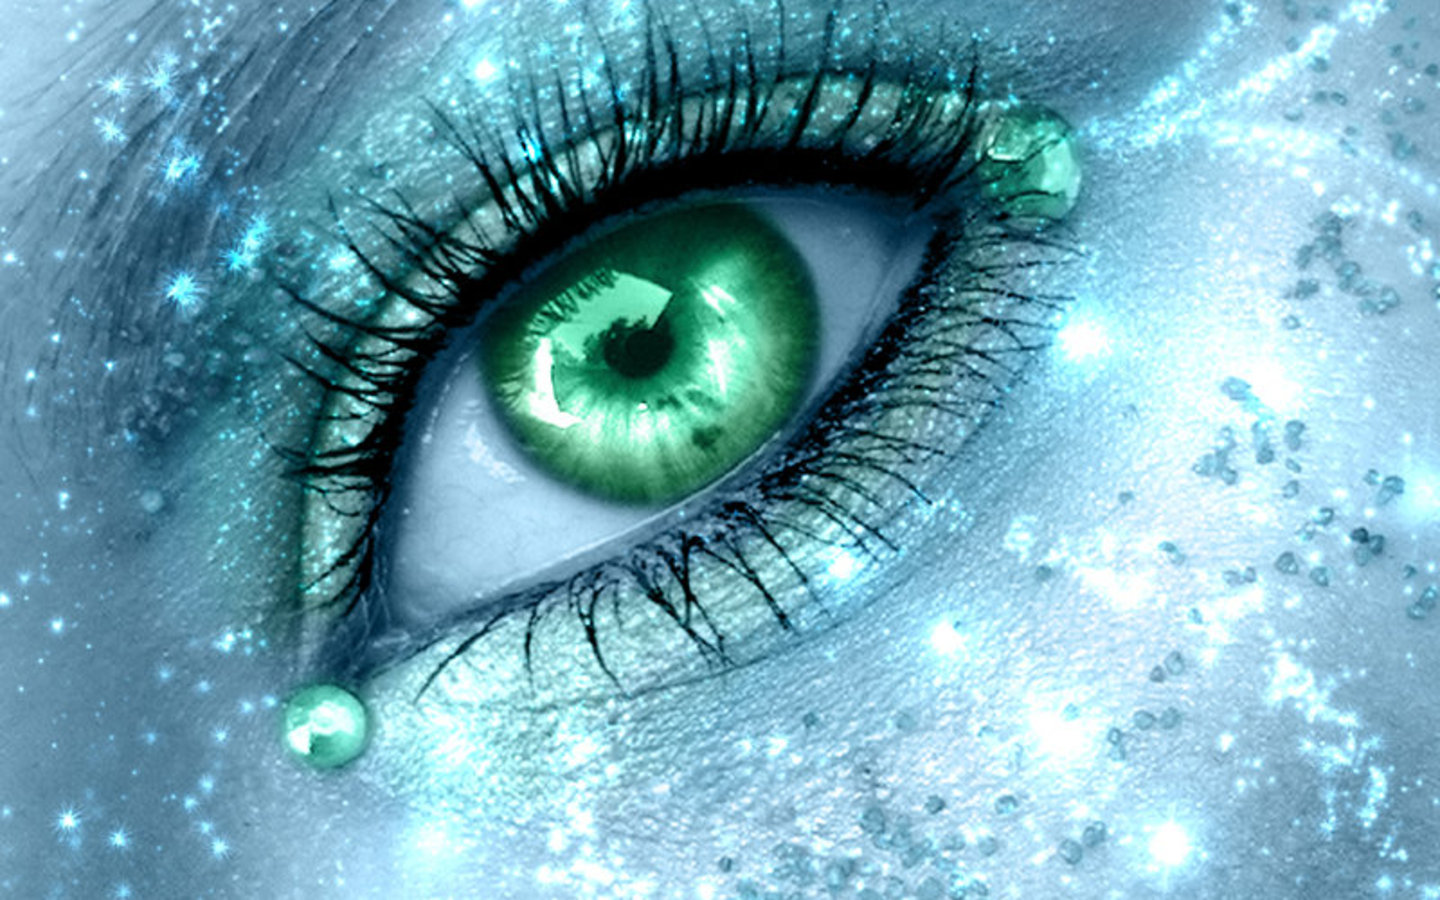 green eyes pic blue eyes images fantasy eyes wallpapers girls eyes hq 1440x900